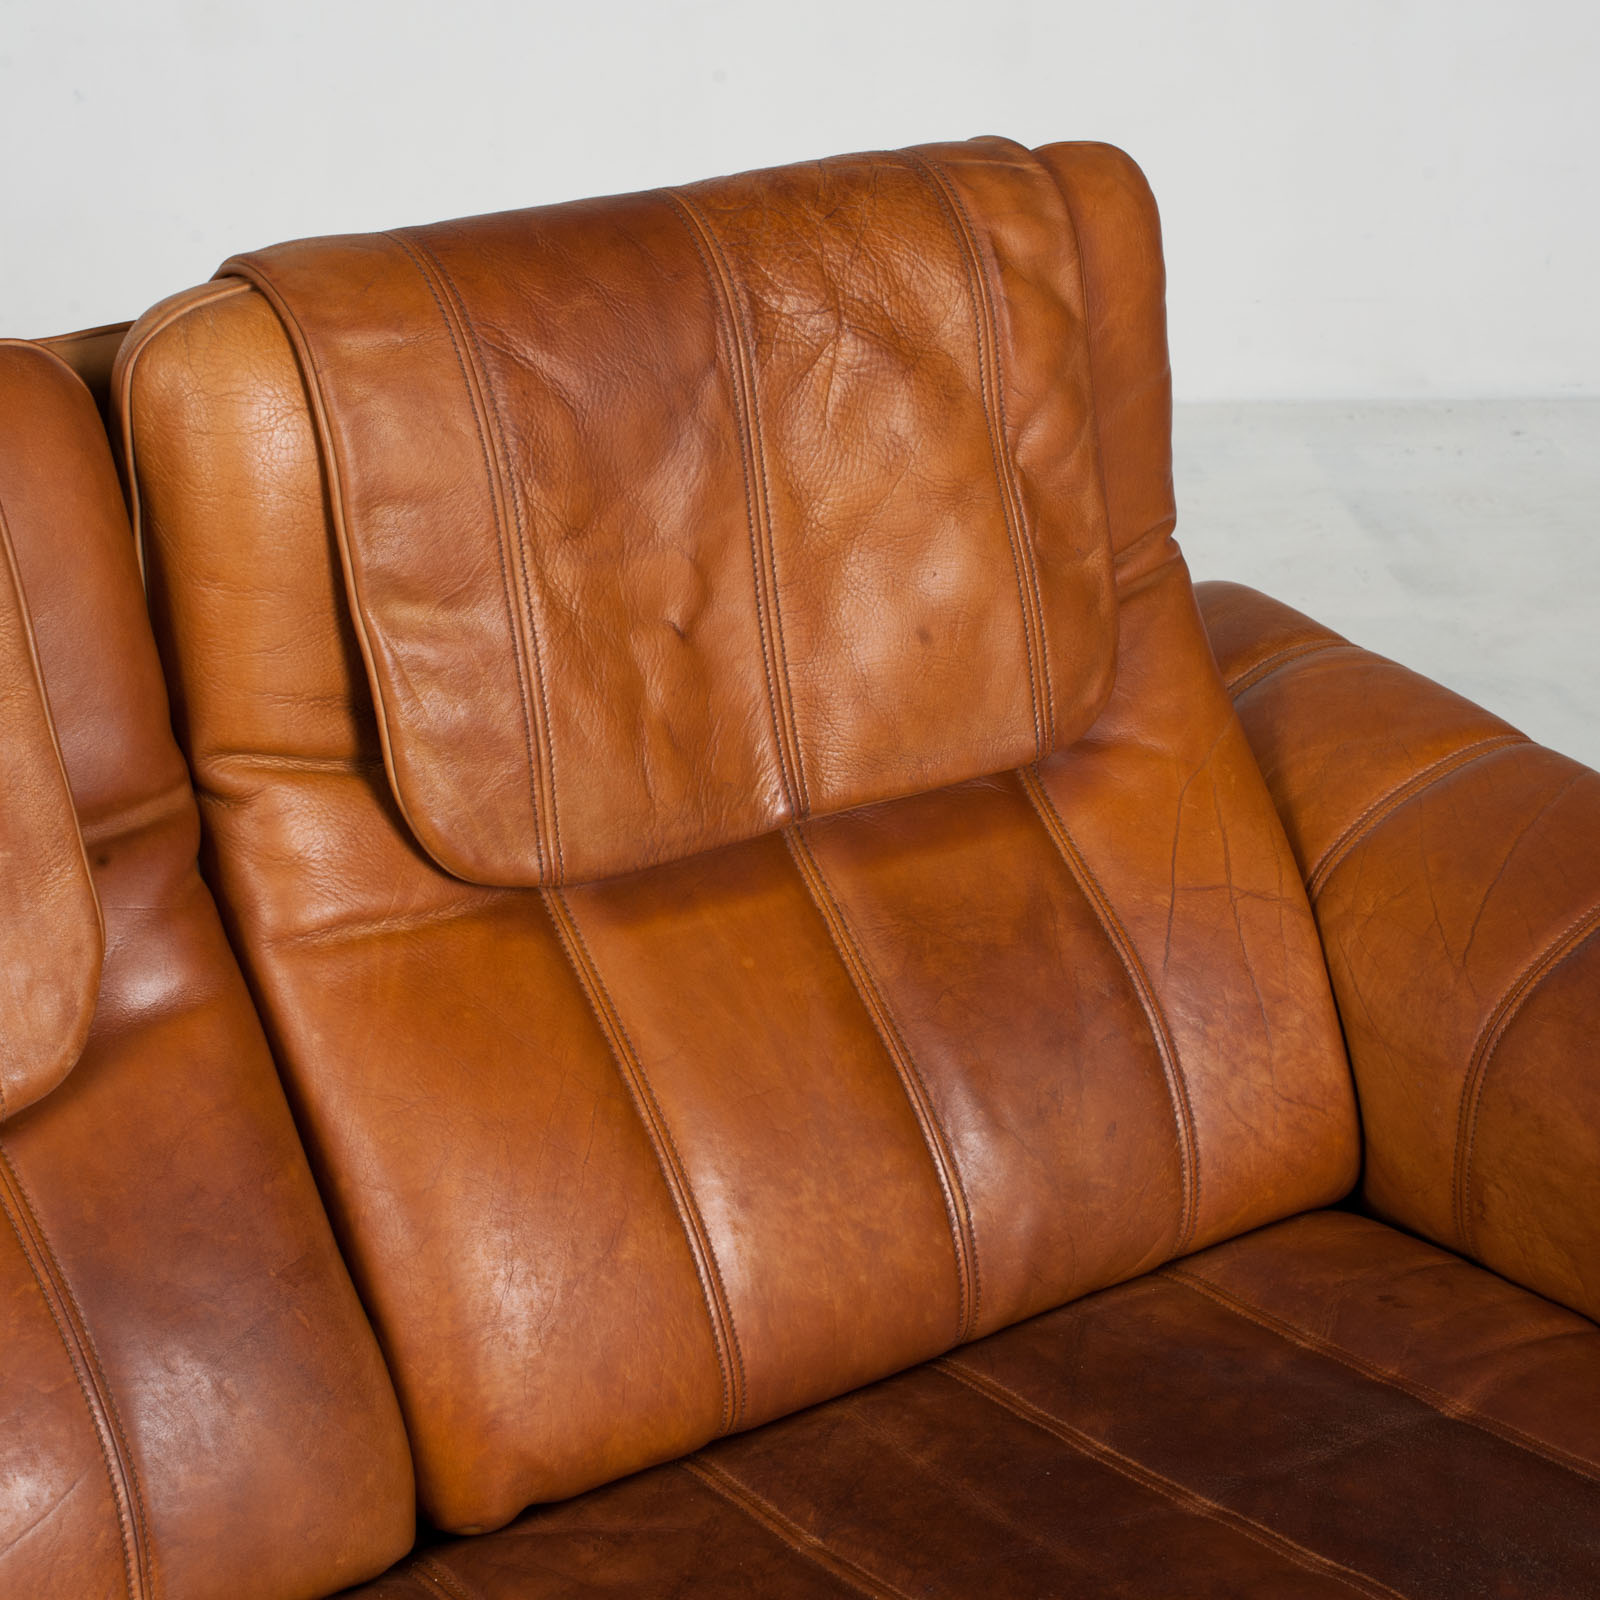 3 Seat Sofa By De Sede In Tan Leather 1970s Switzerland 08